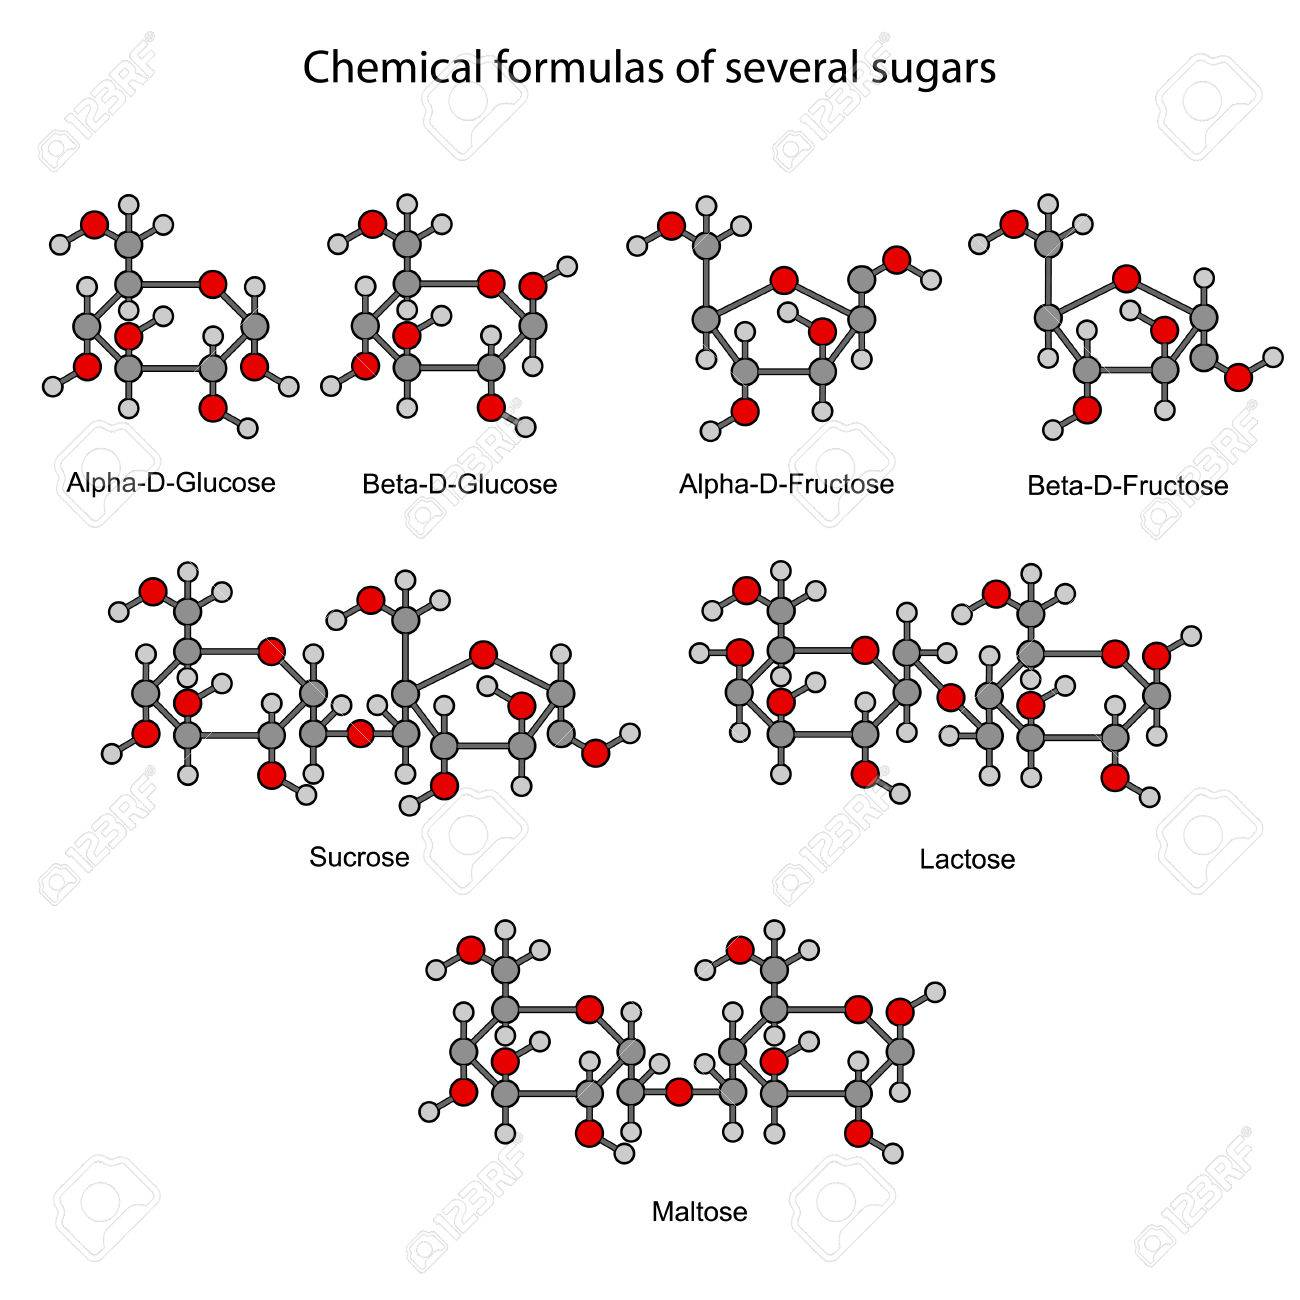 Structural chemical formulas of some sugars, 2d illustration, isolated on white background - 31597571